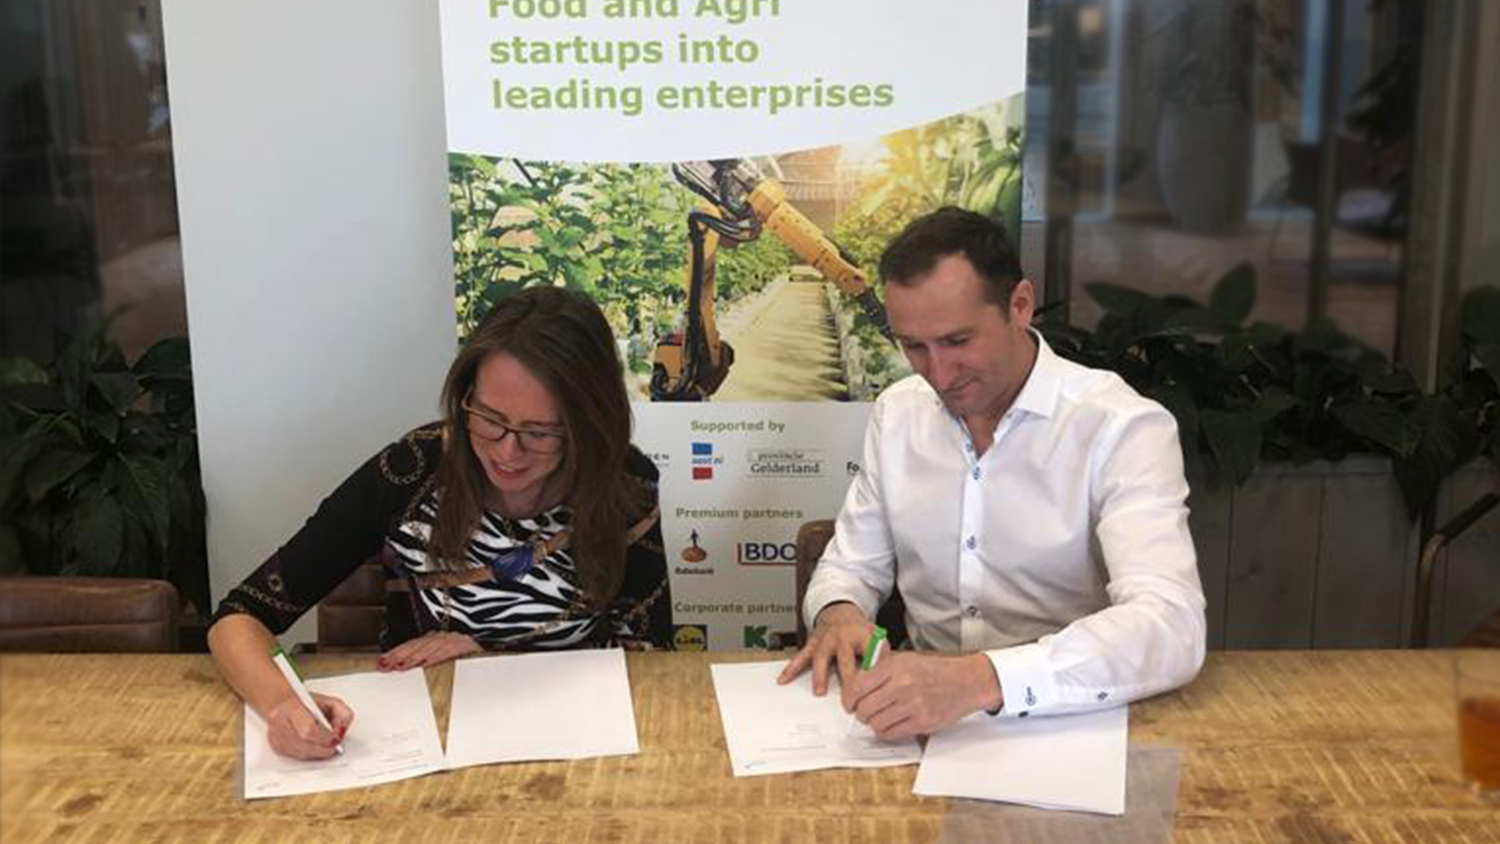 Rachel Dibbets of DBO and Jan Meiling signing partnership agreement